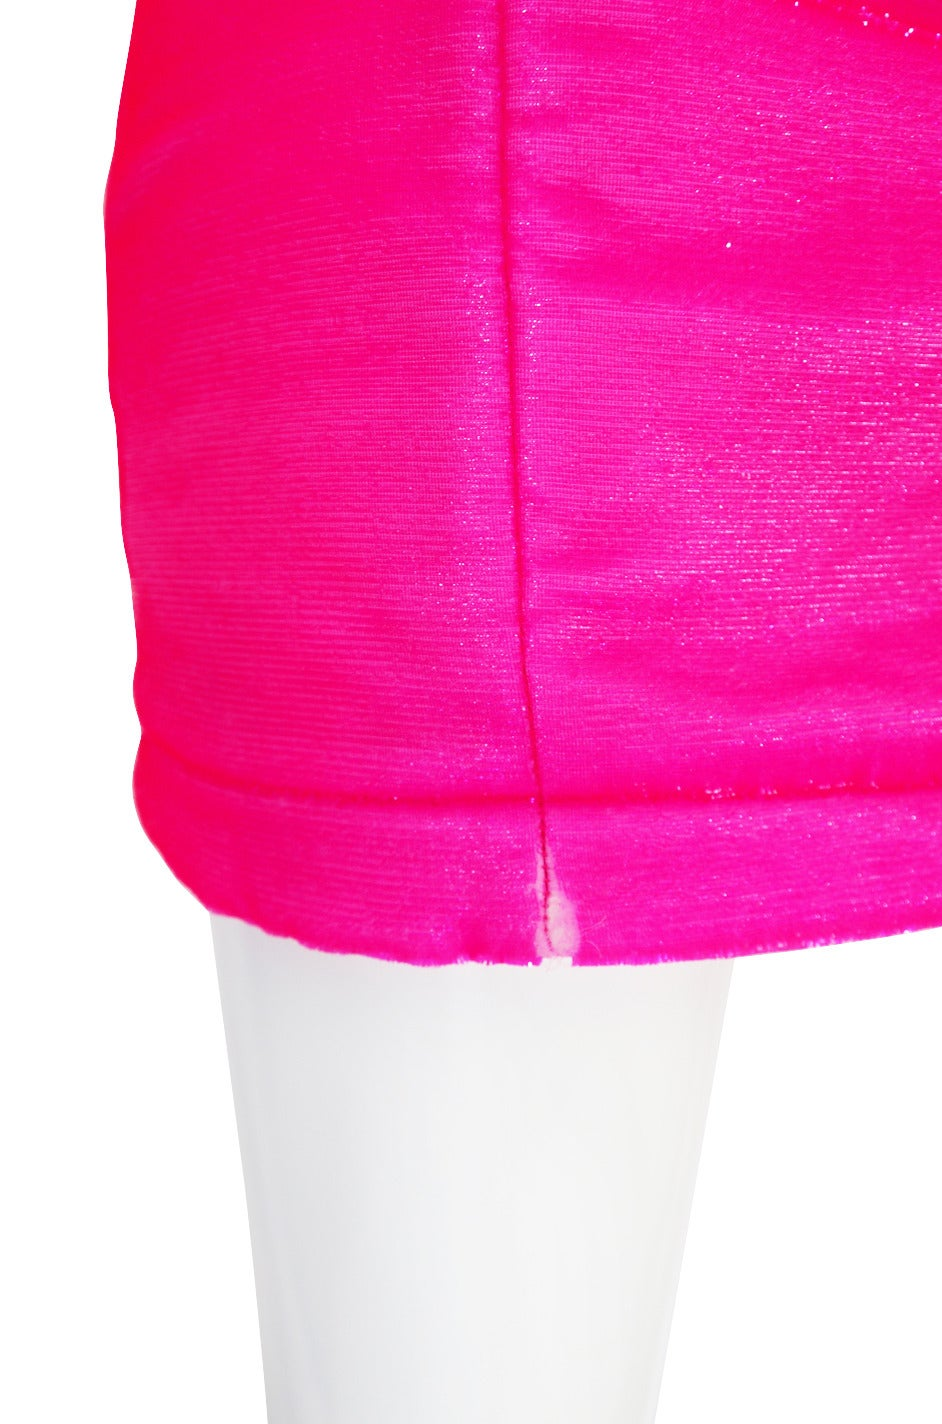 1990s Neon Pink Velvet Padded Rifat Ozbek Dress 7